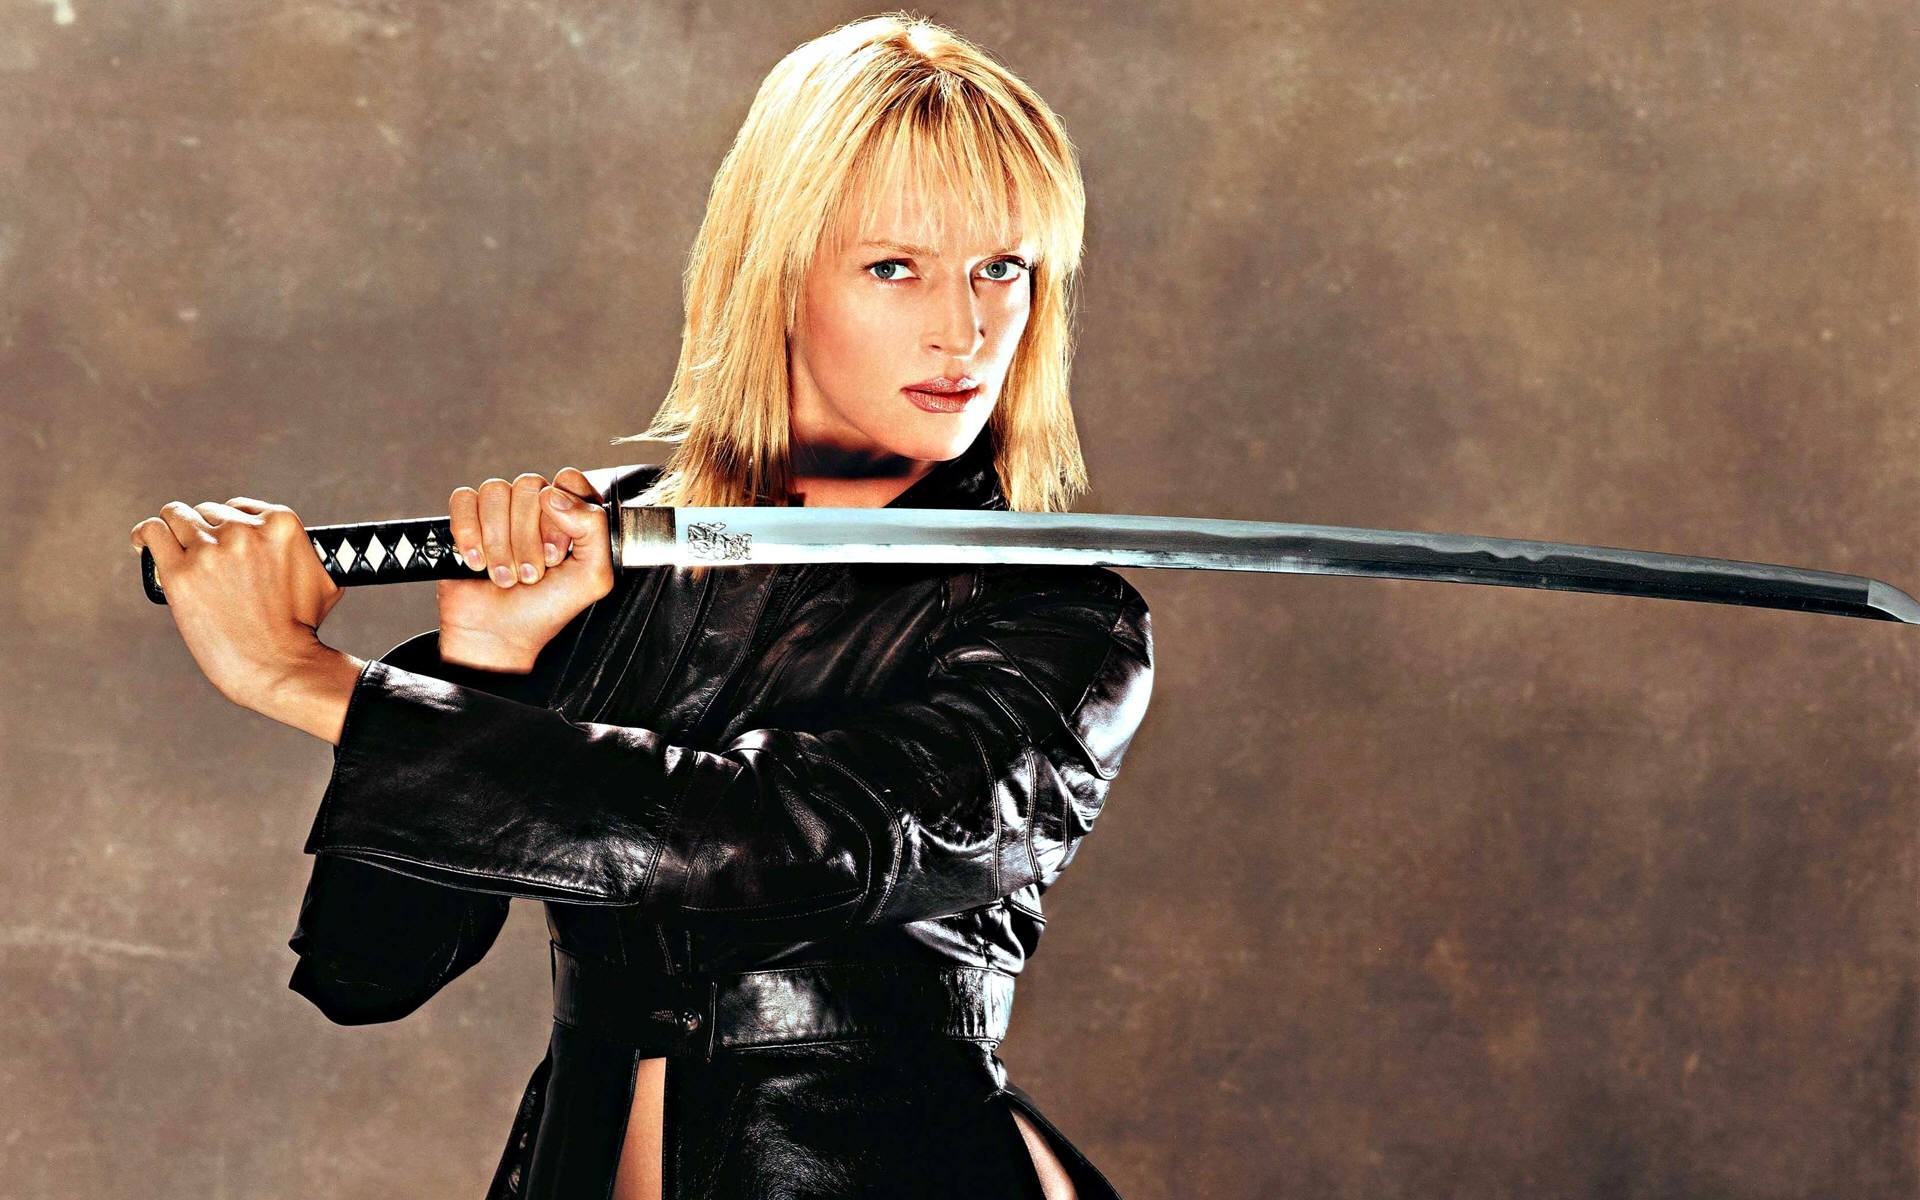 Katana Uma Thurman Kill HD Wallpaper